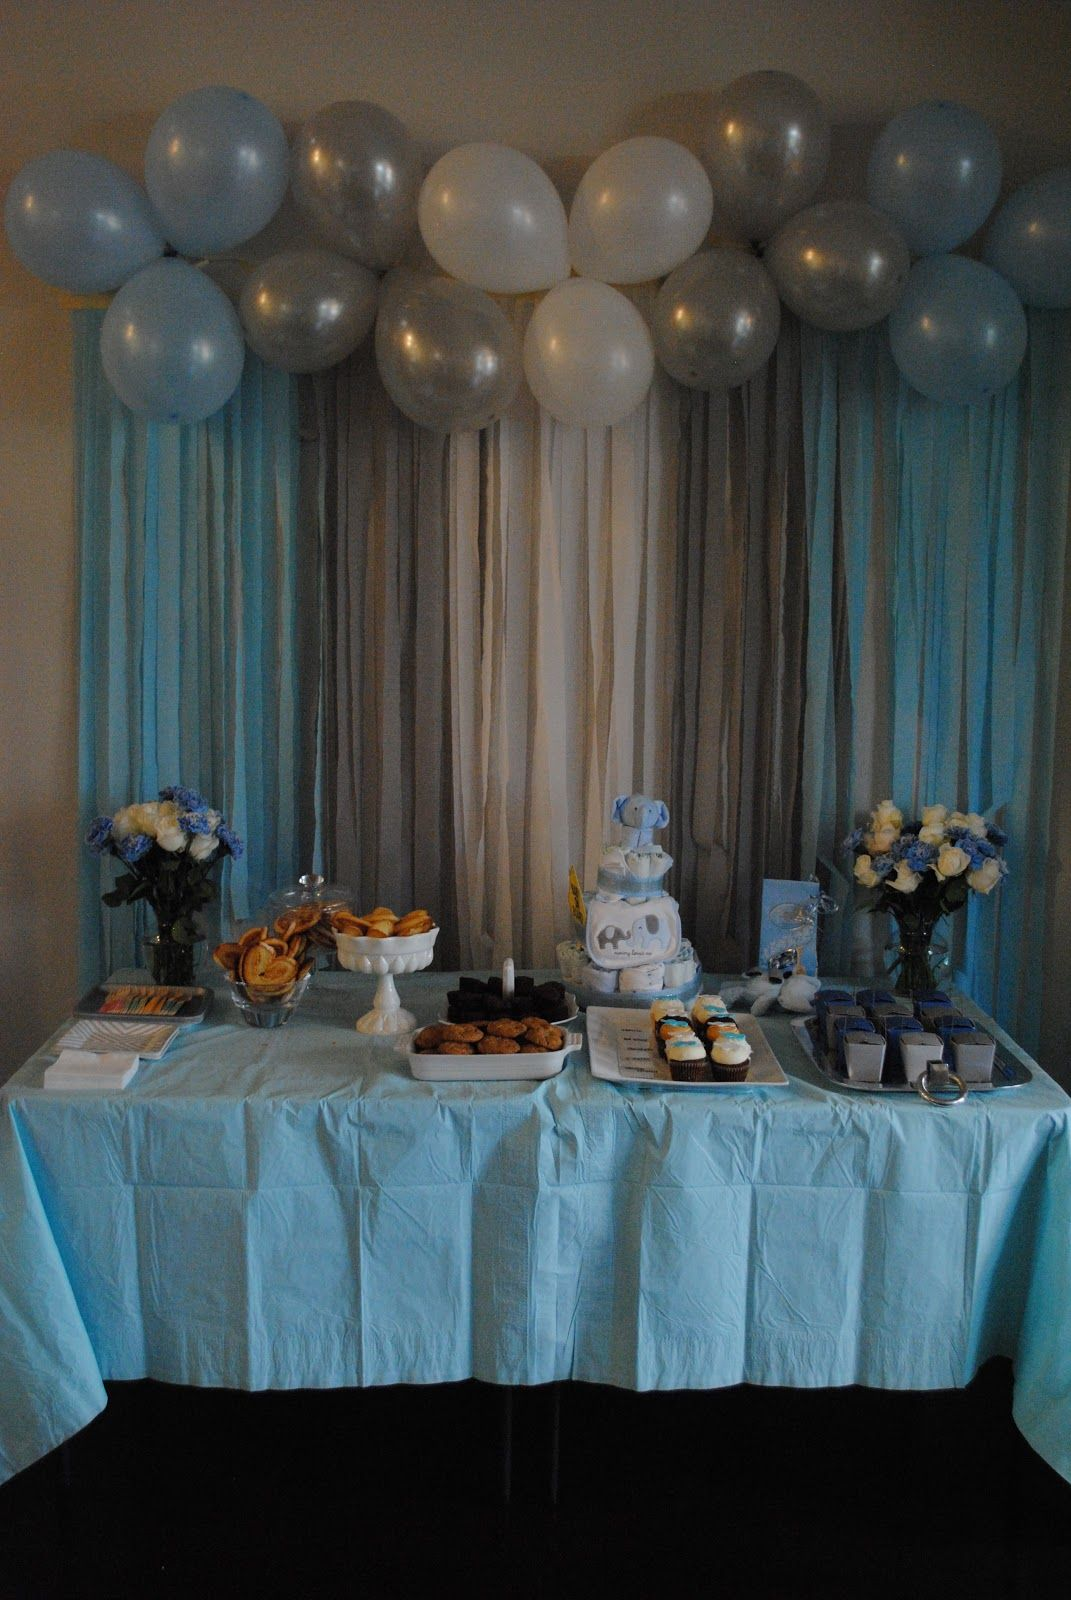 Amazing Like His Style Backdrop! Baby Shower Or Bday: Balloons U0026 Streamers Backdrop!  Saving All The Pink And Purple Ballons From My Sons Bday For This